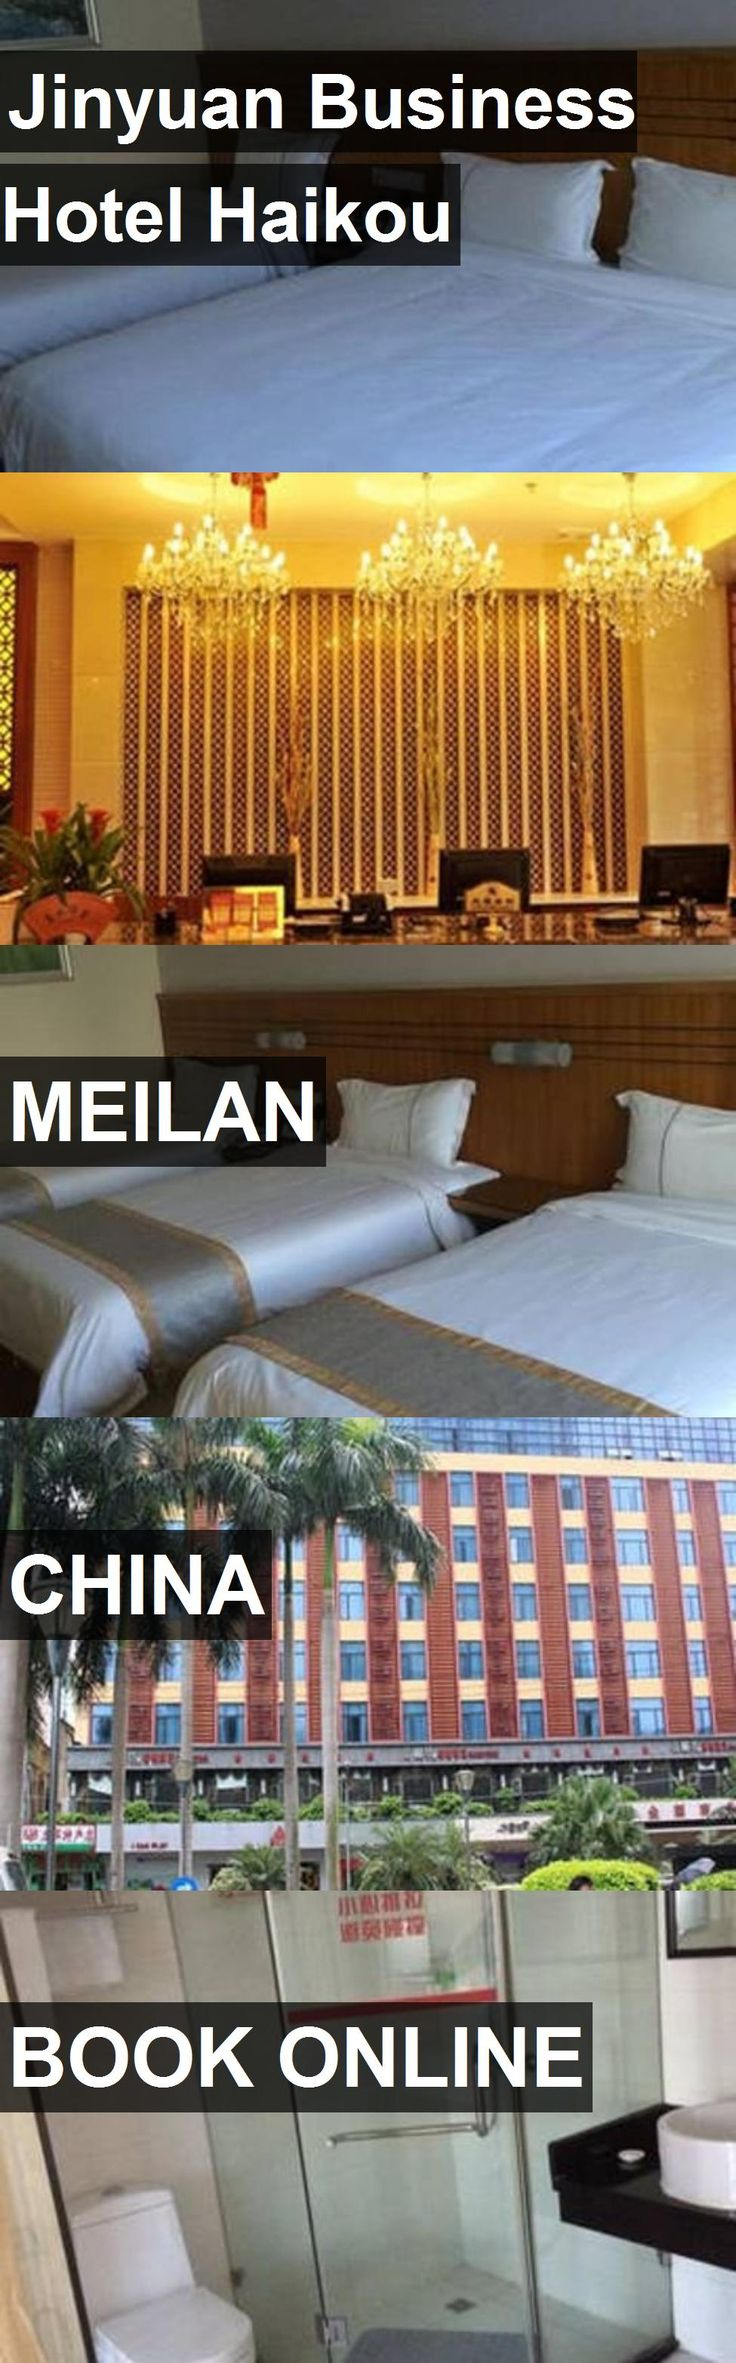 Jinyuan Business Hotel Haikou in Meilan, China. For more information, photos, reviews and best prices please follow the link. #China #Meilan #travel #vacation #hotel